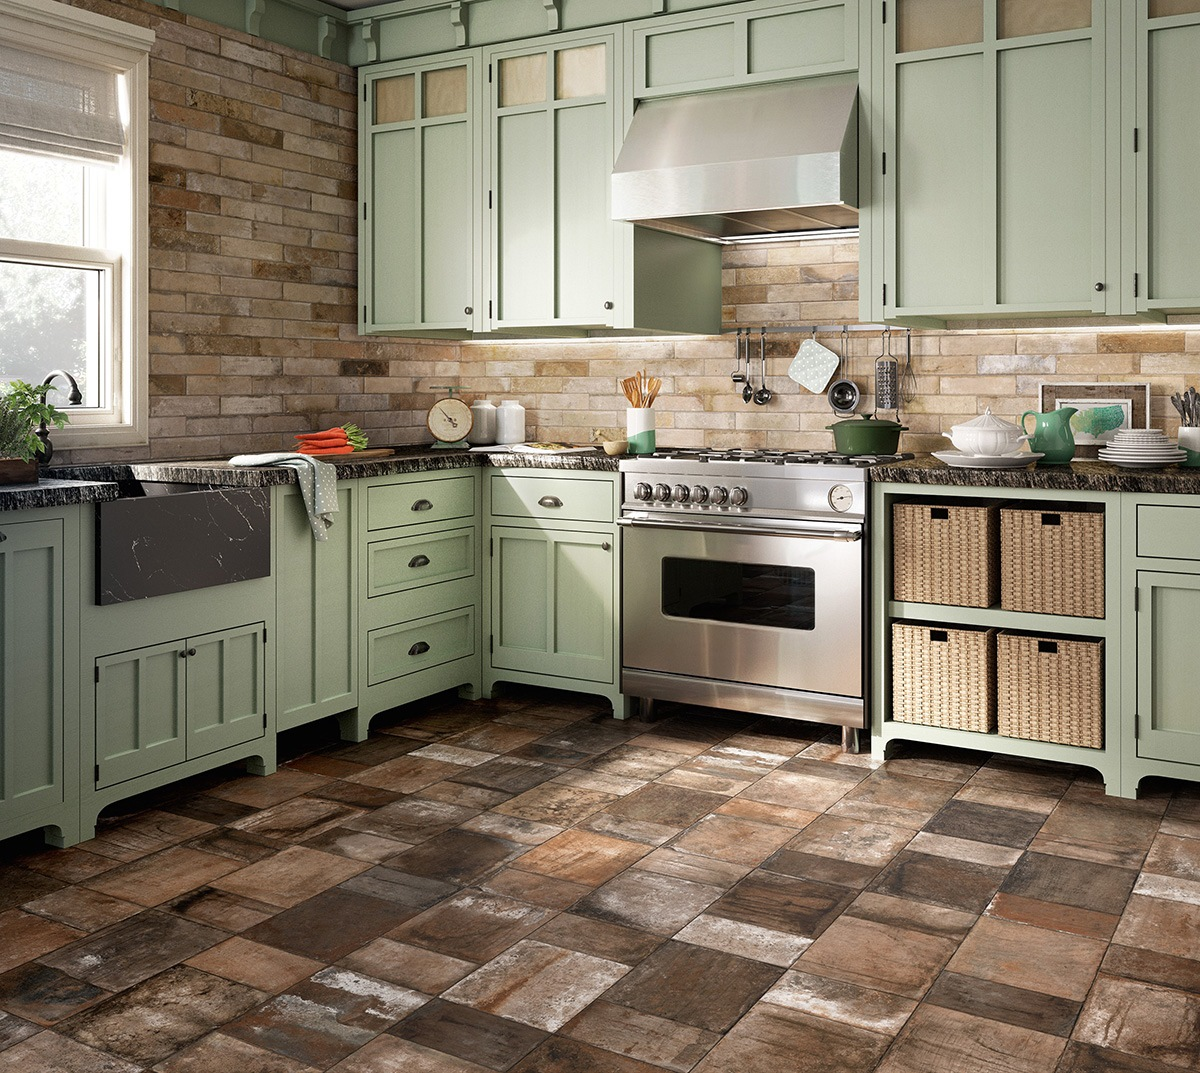 Porcelain stoneware floors in kitchen country style for How to style a kitchen